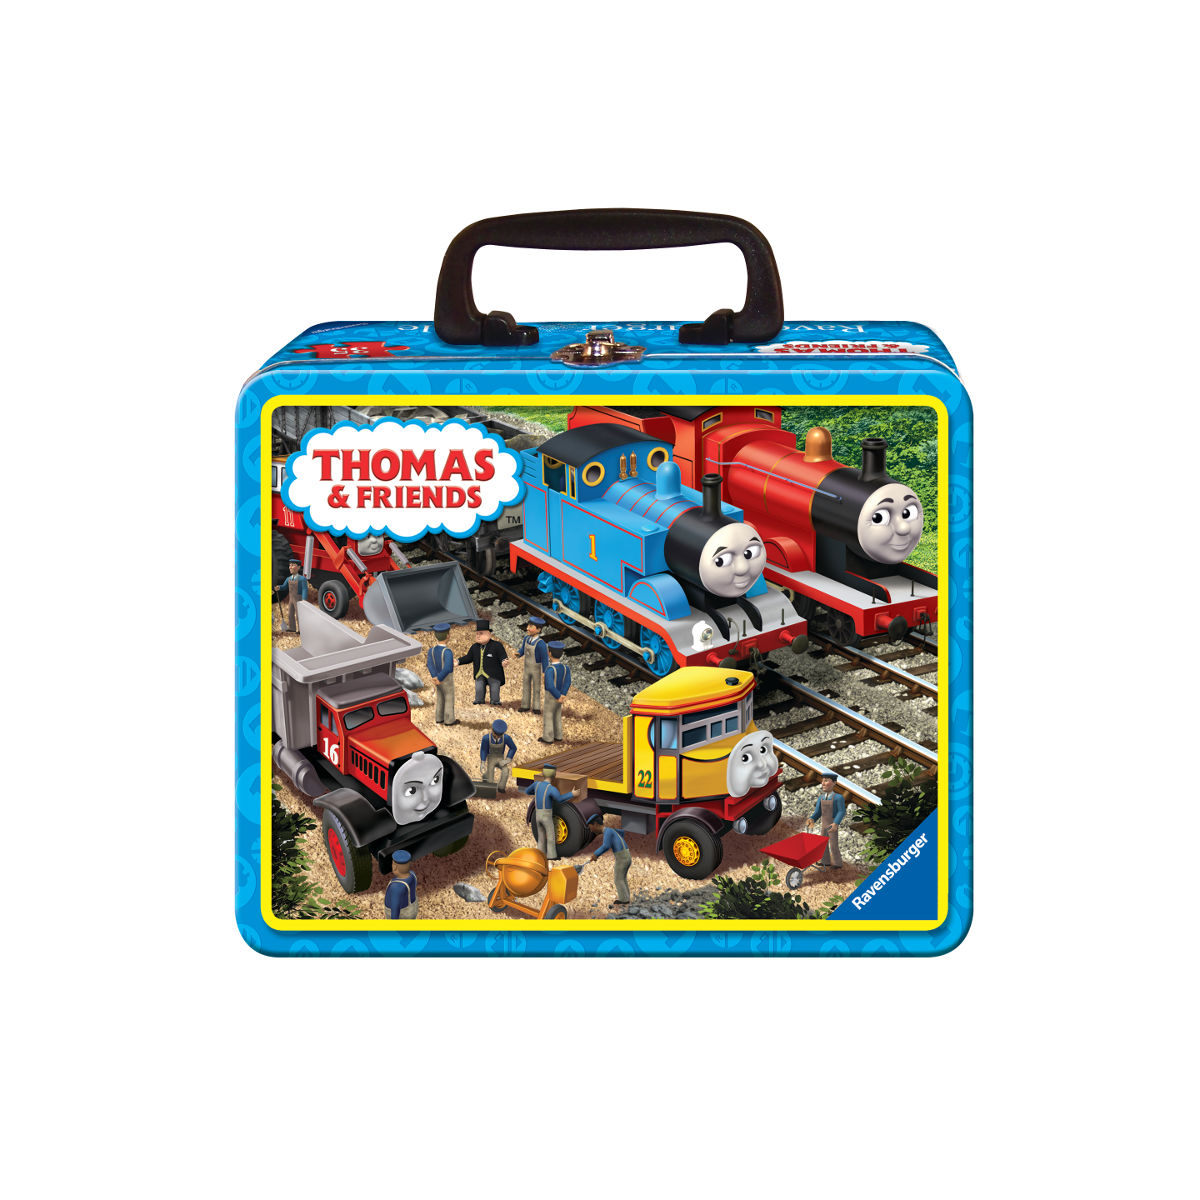 Making Repairs Thomas and Friends Jigsaw Puzzle